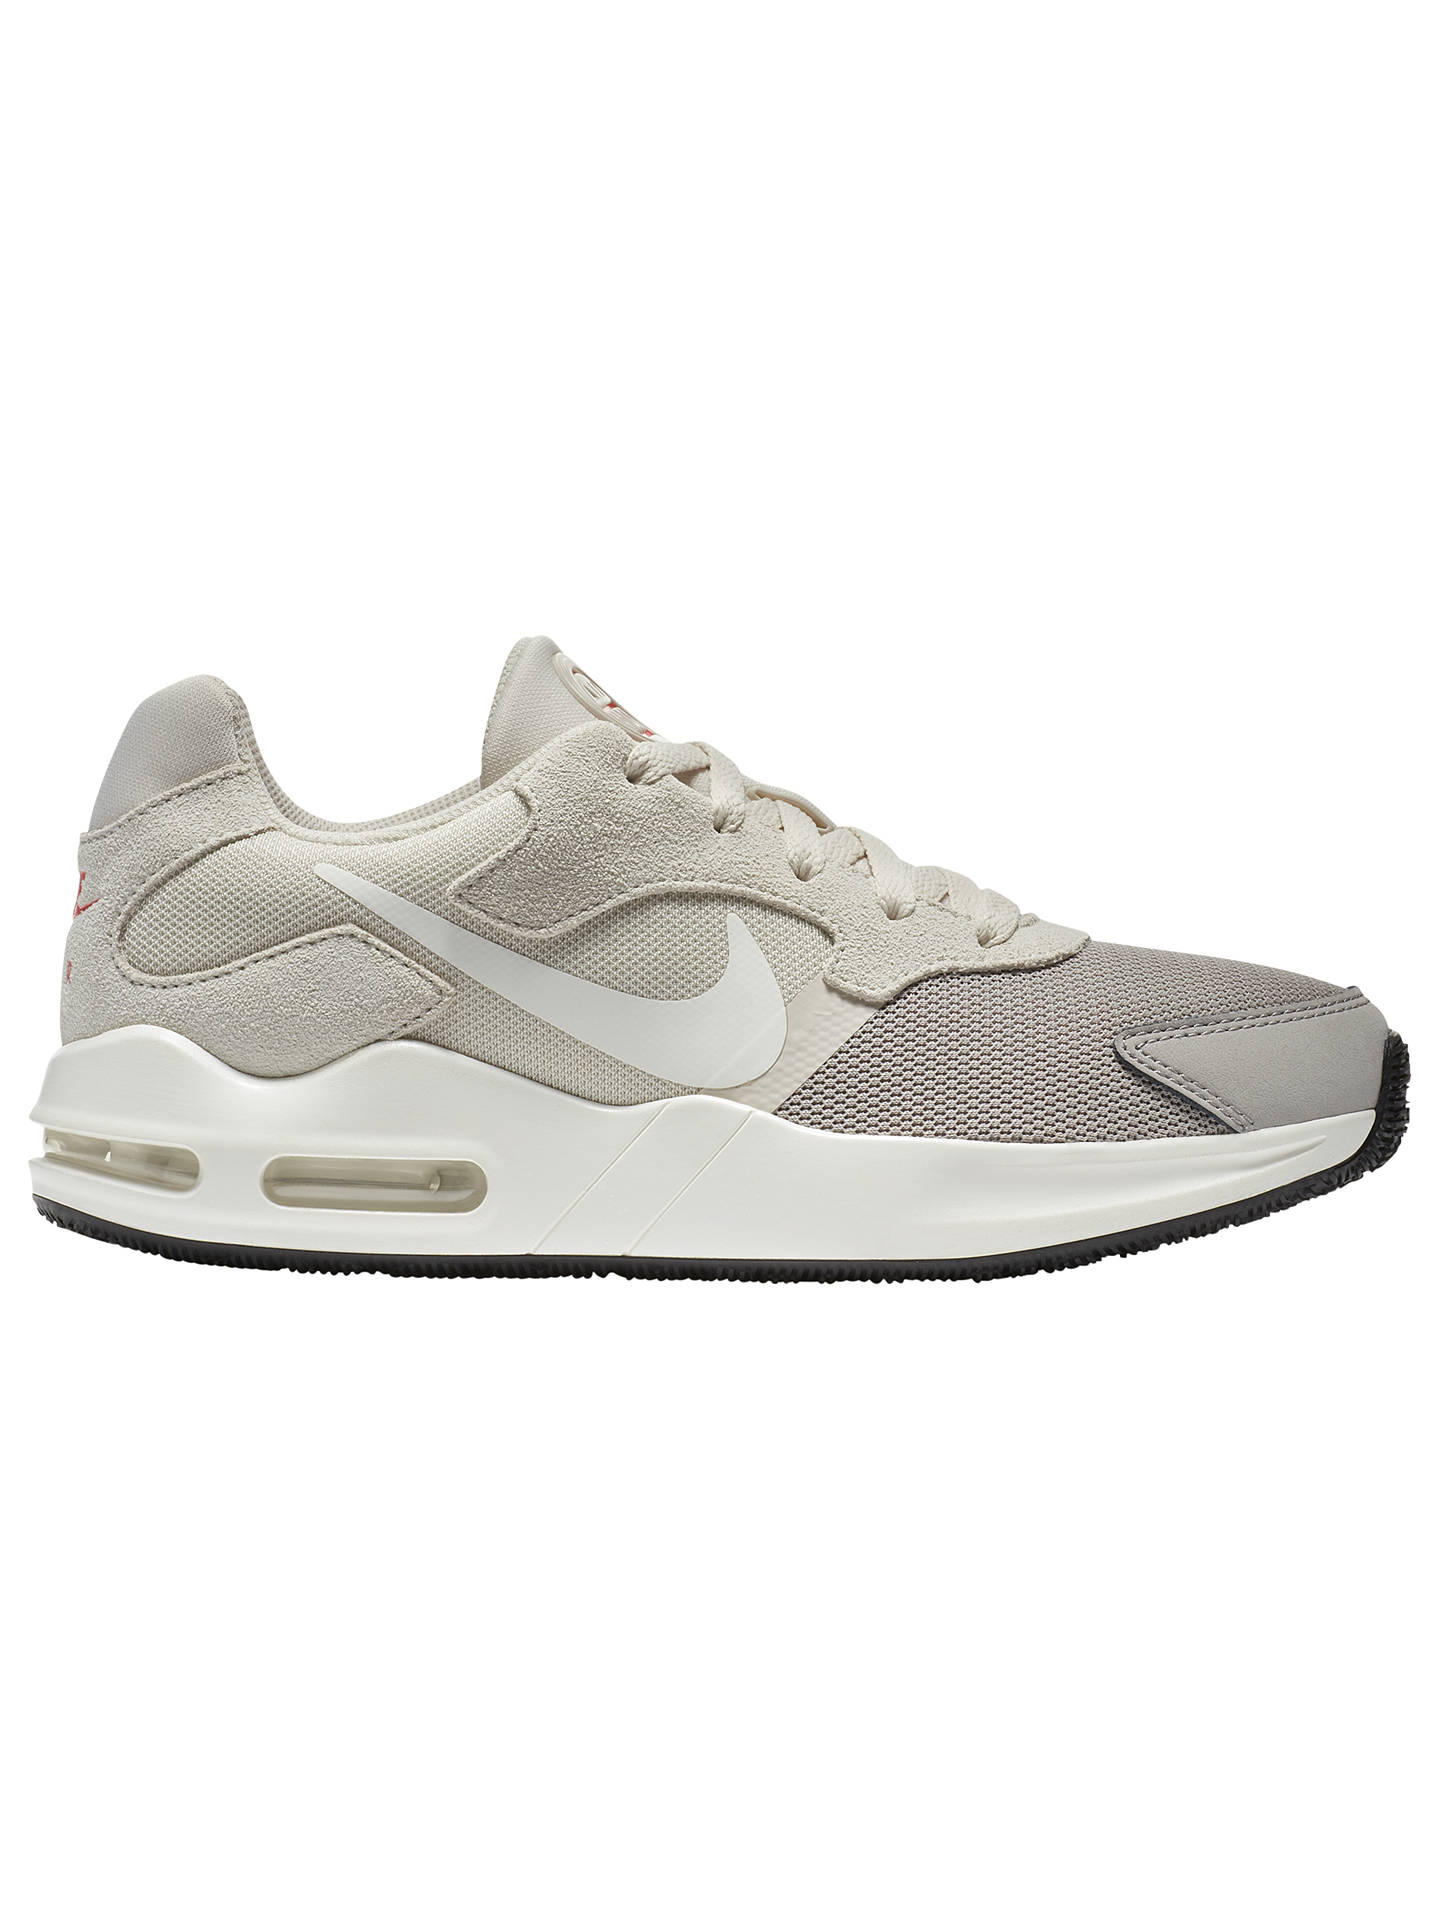 57ba8b9ad55c7 ... coupon code for buynike air max guile womens trainers white cream 4  online at johnlewis.